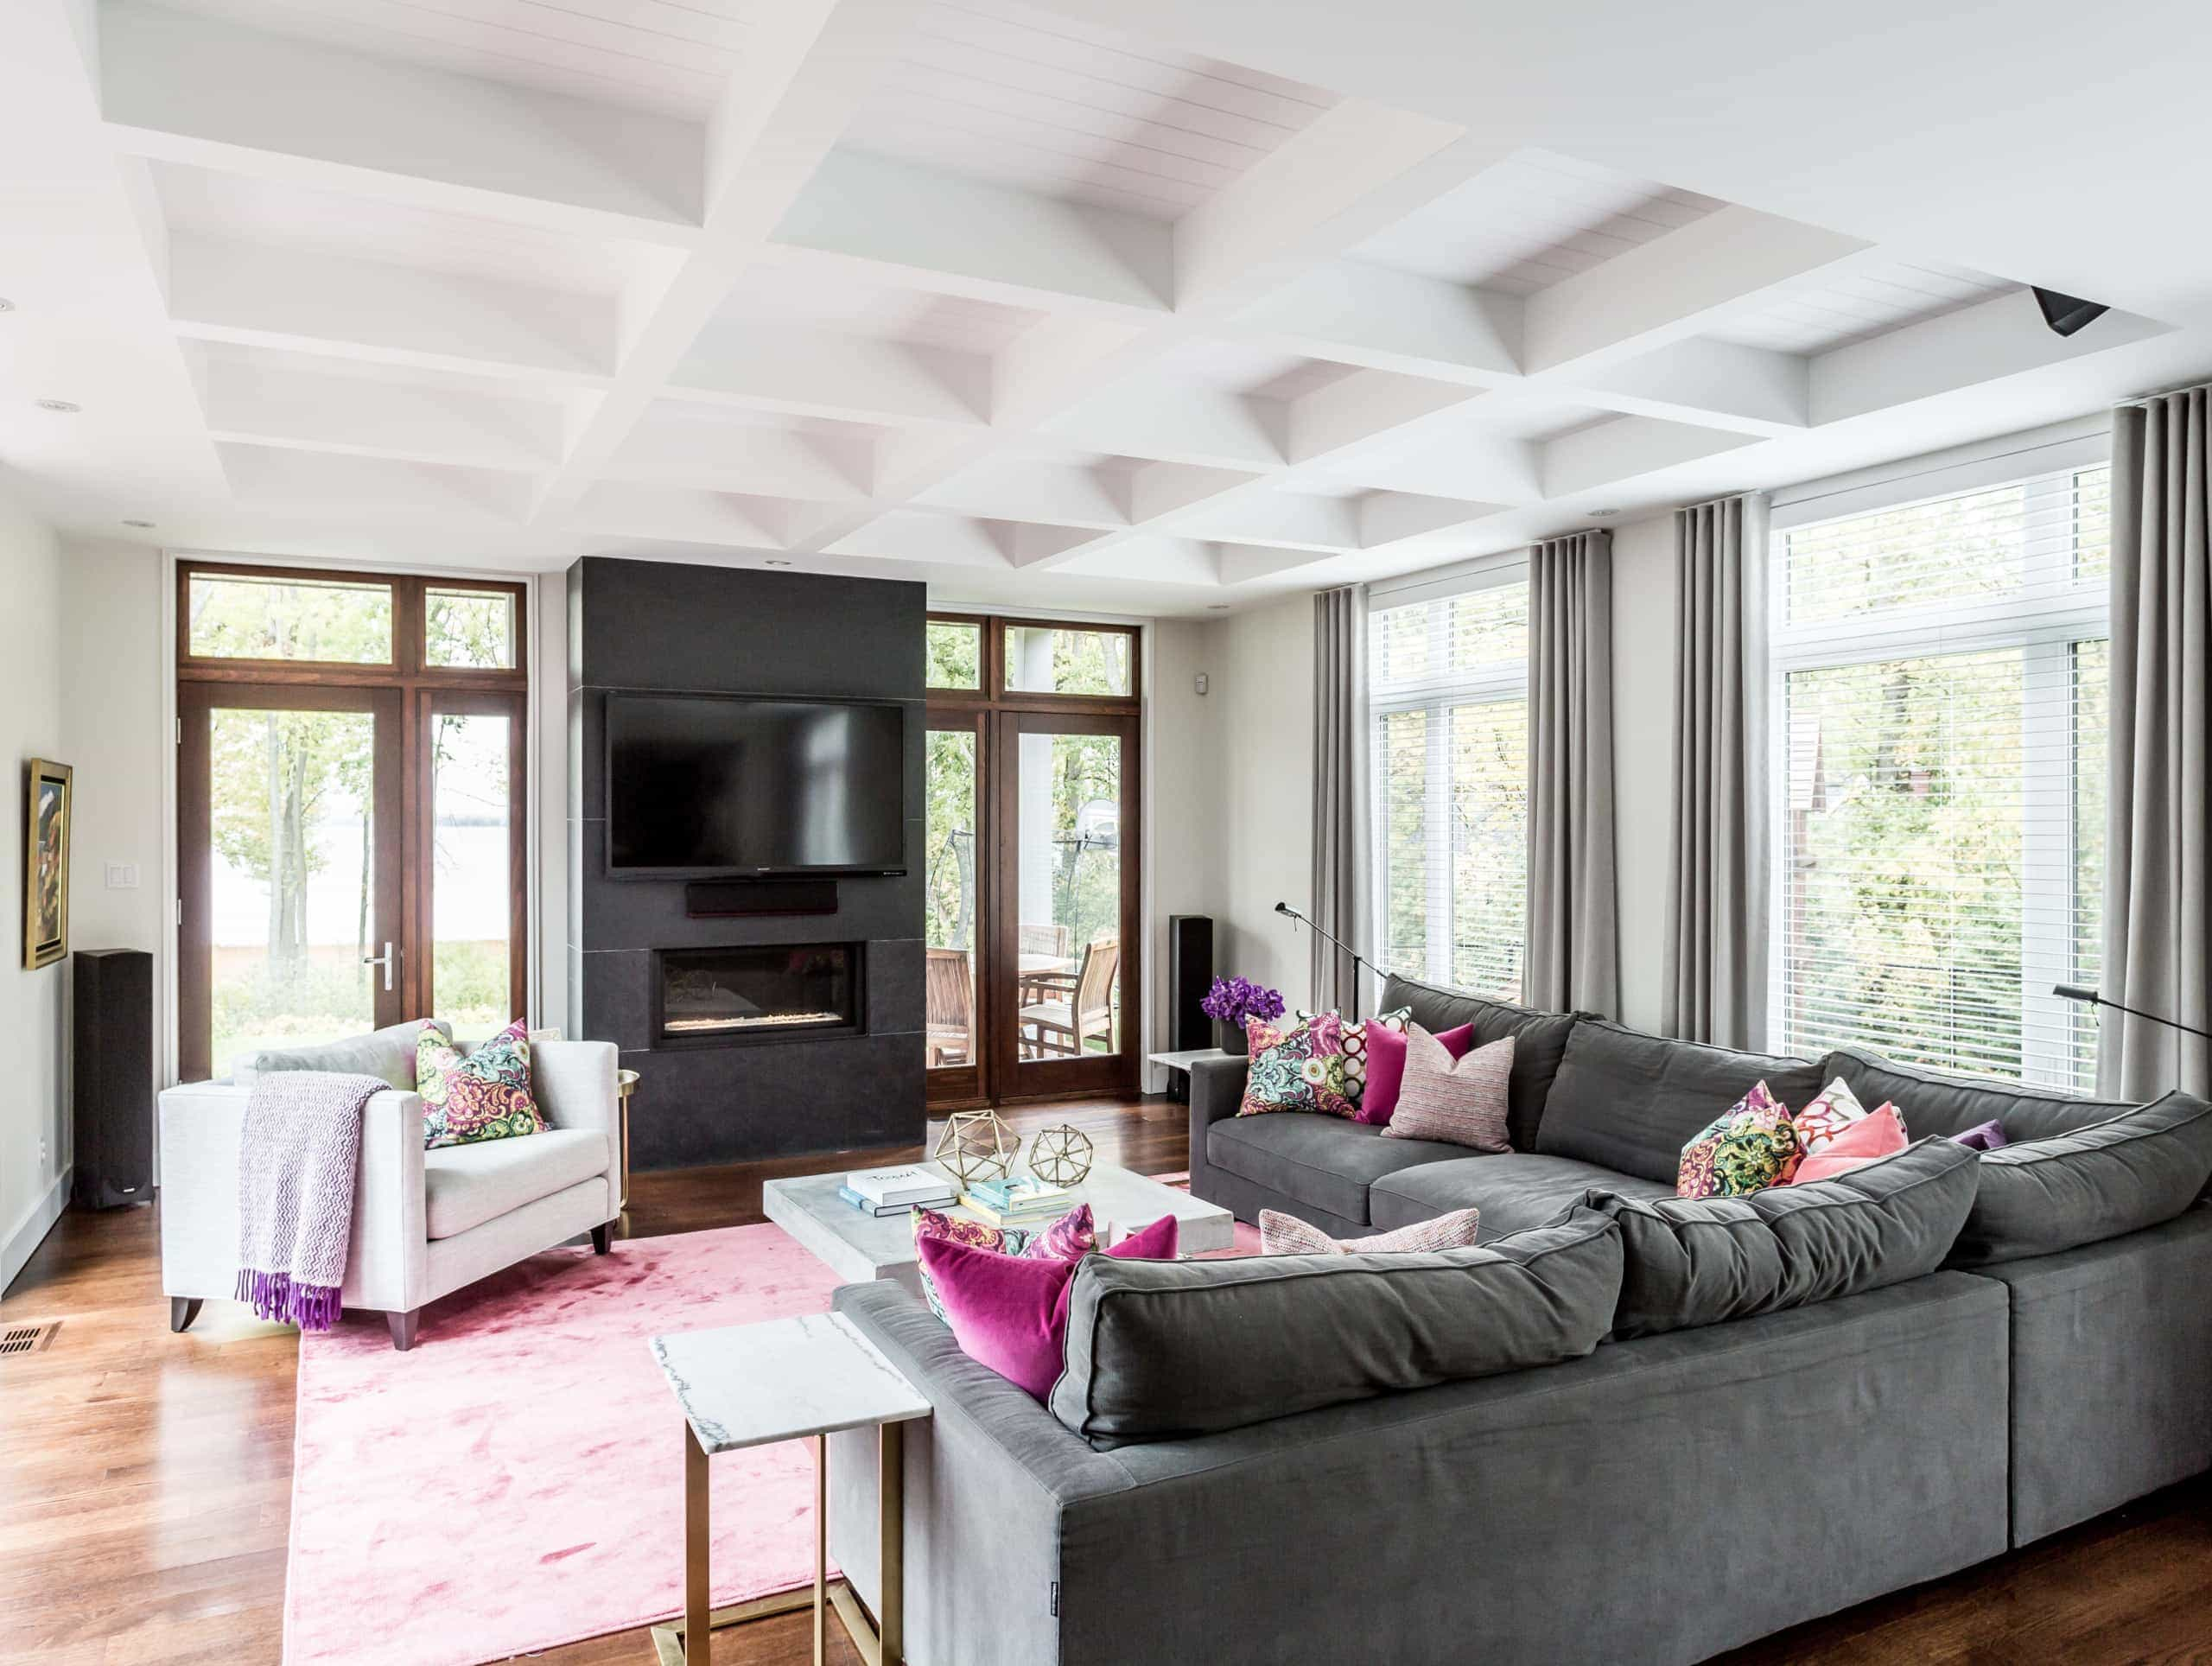 Large living room with a pink carpet